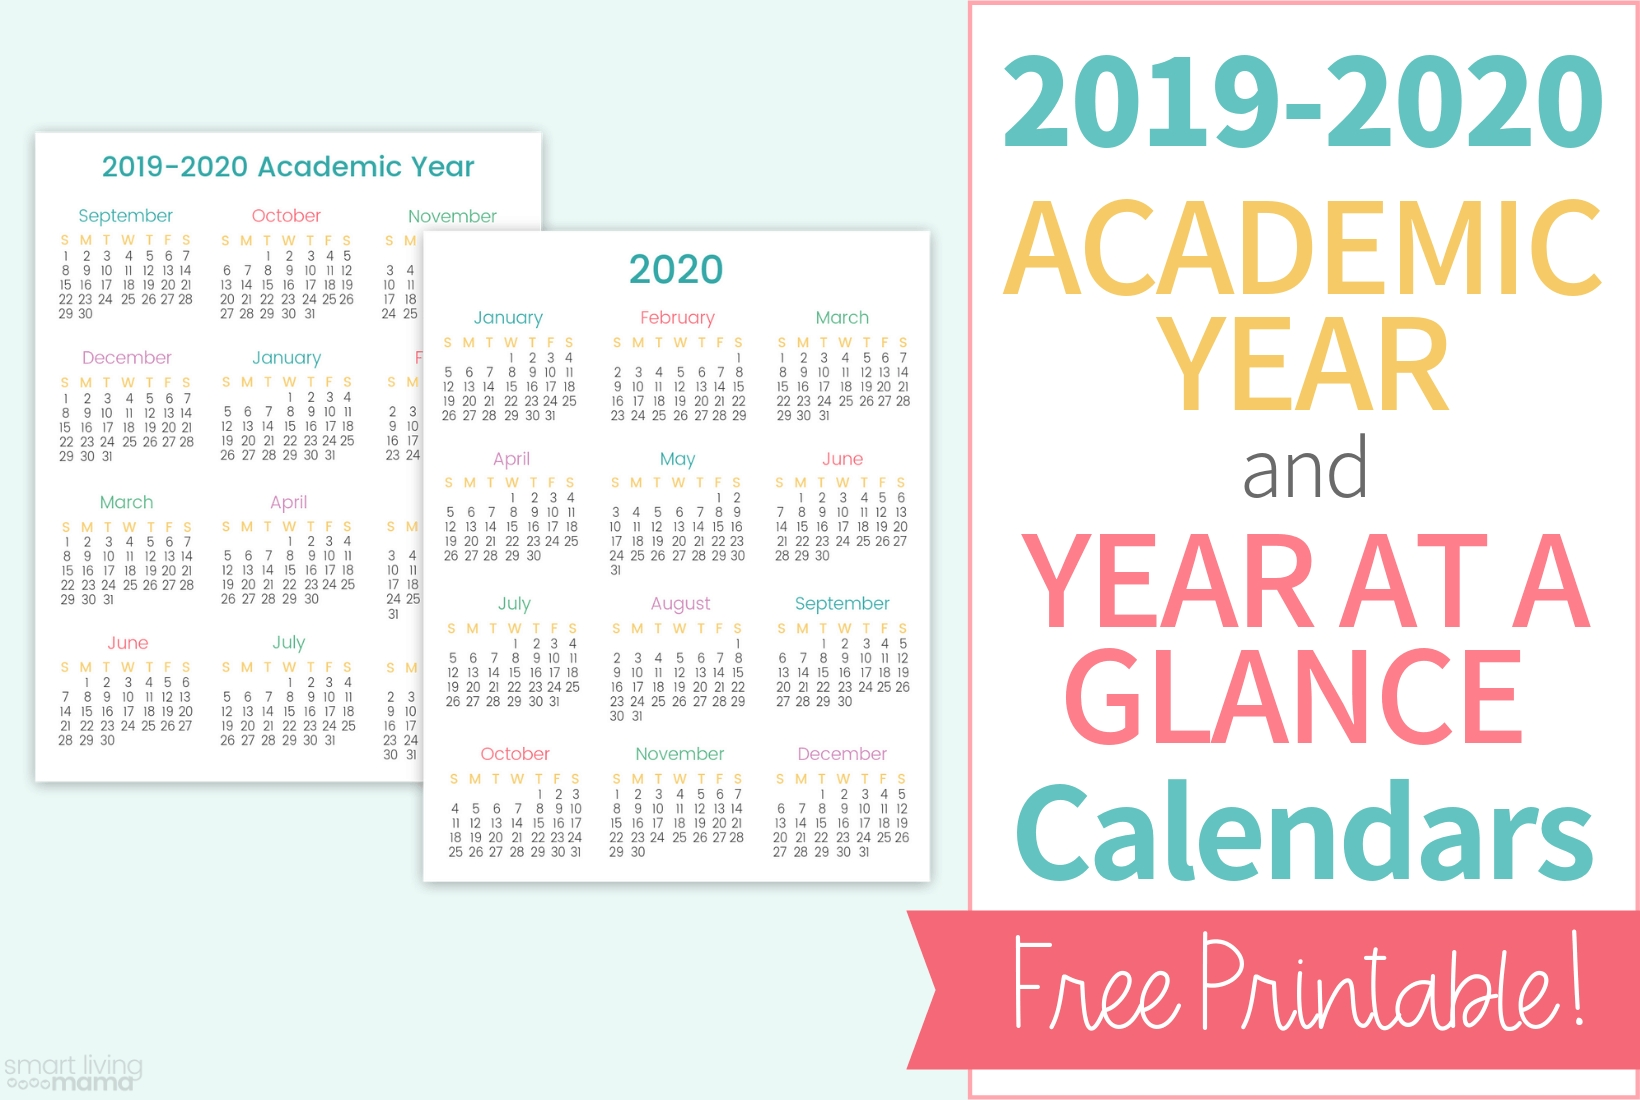 Colorful Printable Calendars For 2019-2020 | Smart Living Mama in Printable 2020 Calendar Year At A Glance